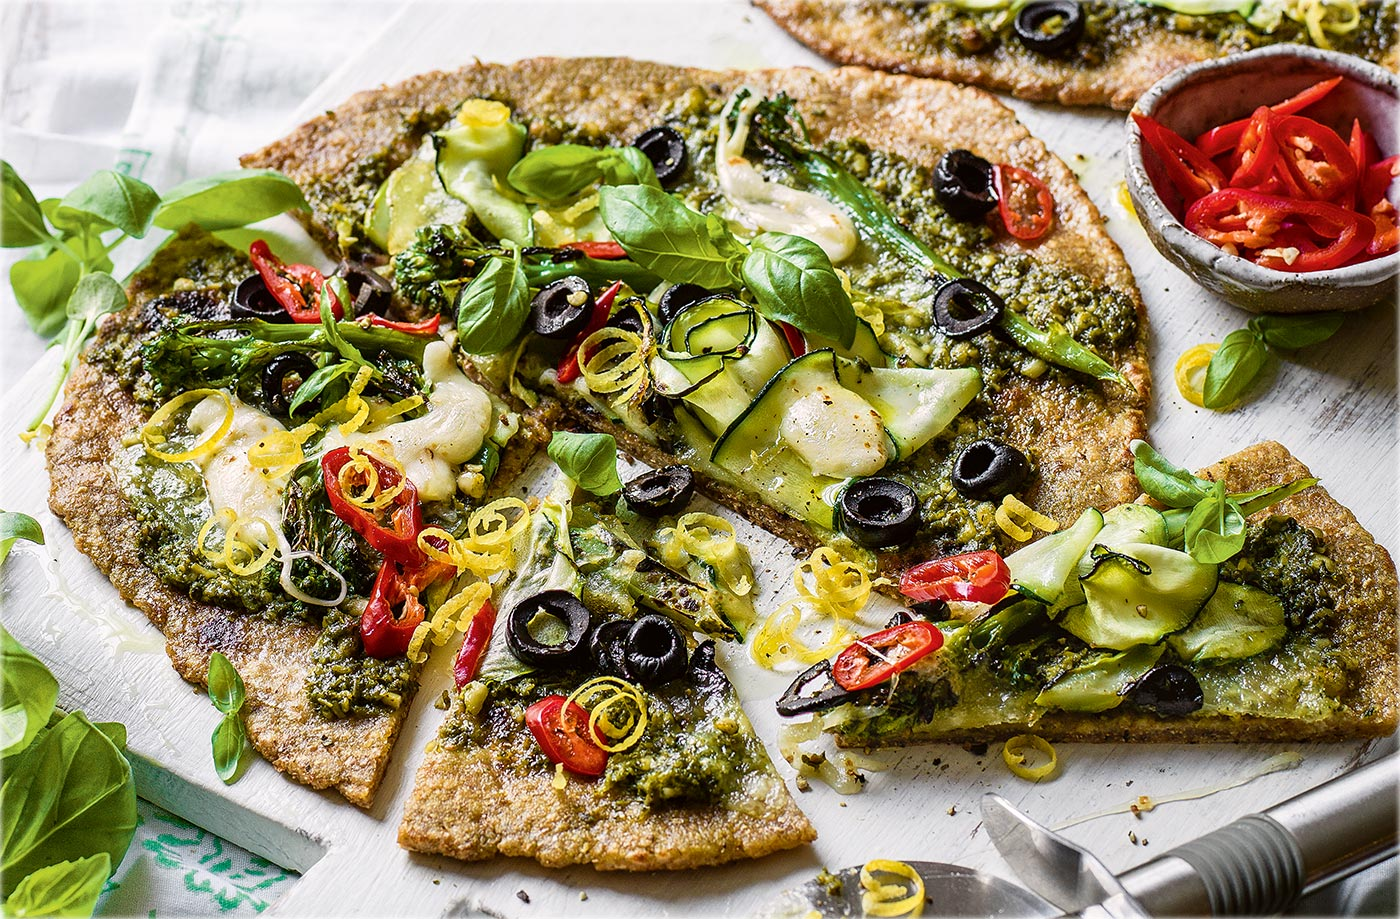 Vegetarian recipes vegetarian meal ideas tesco real food courgette and broccoli wholemeal pizzas forumfinder Images